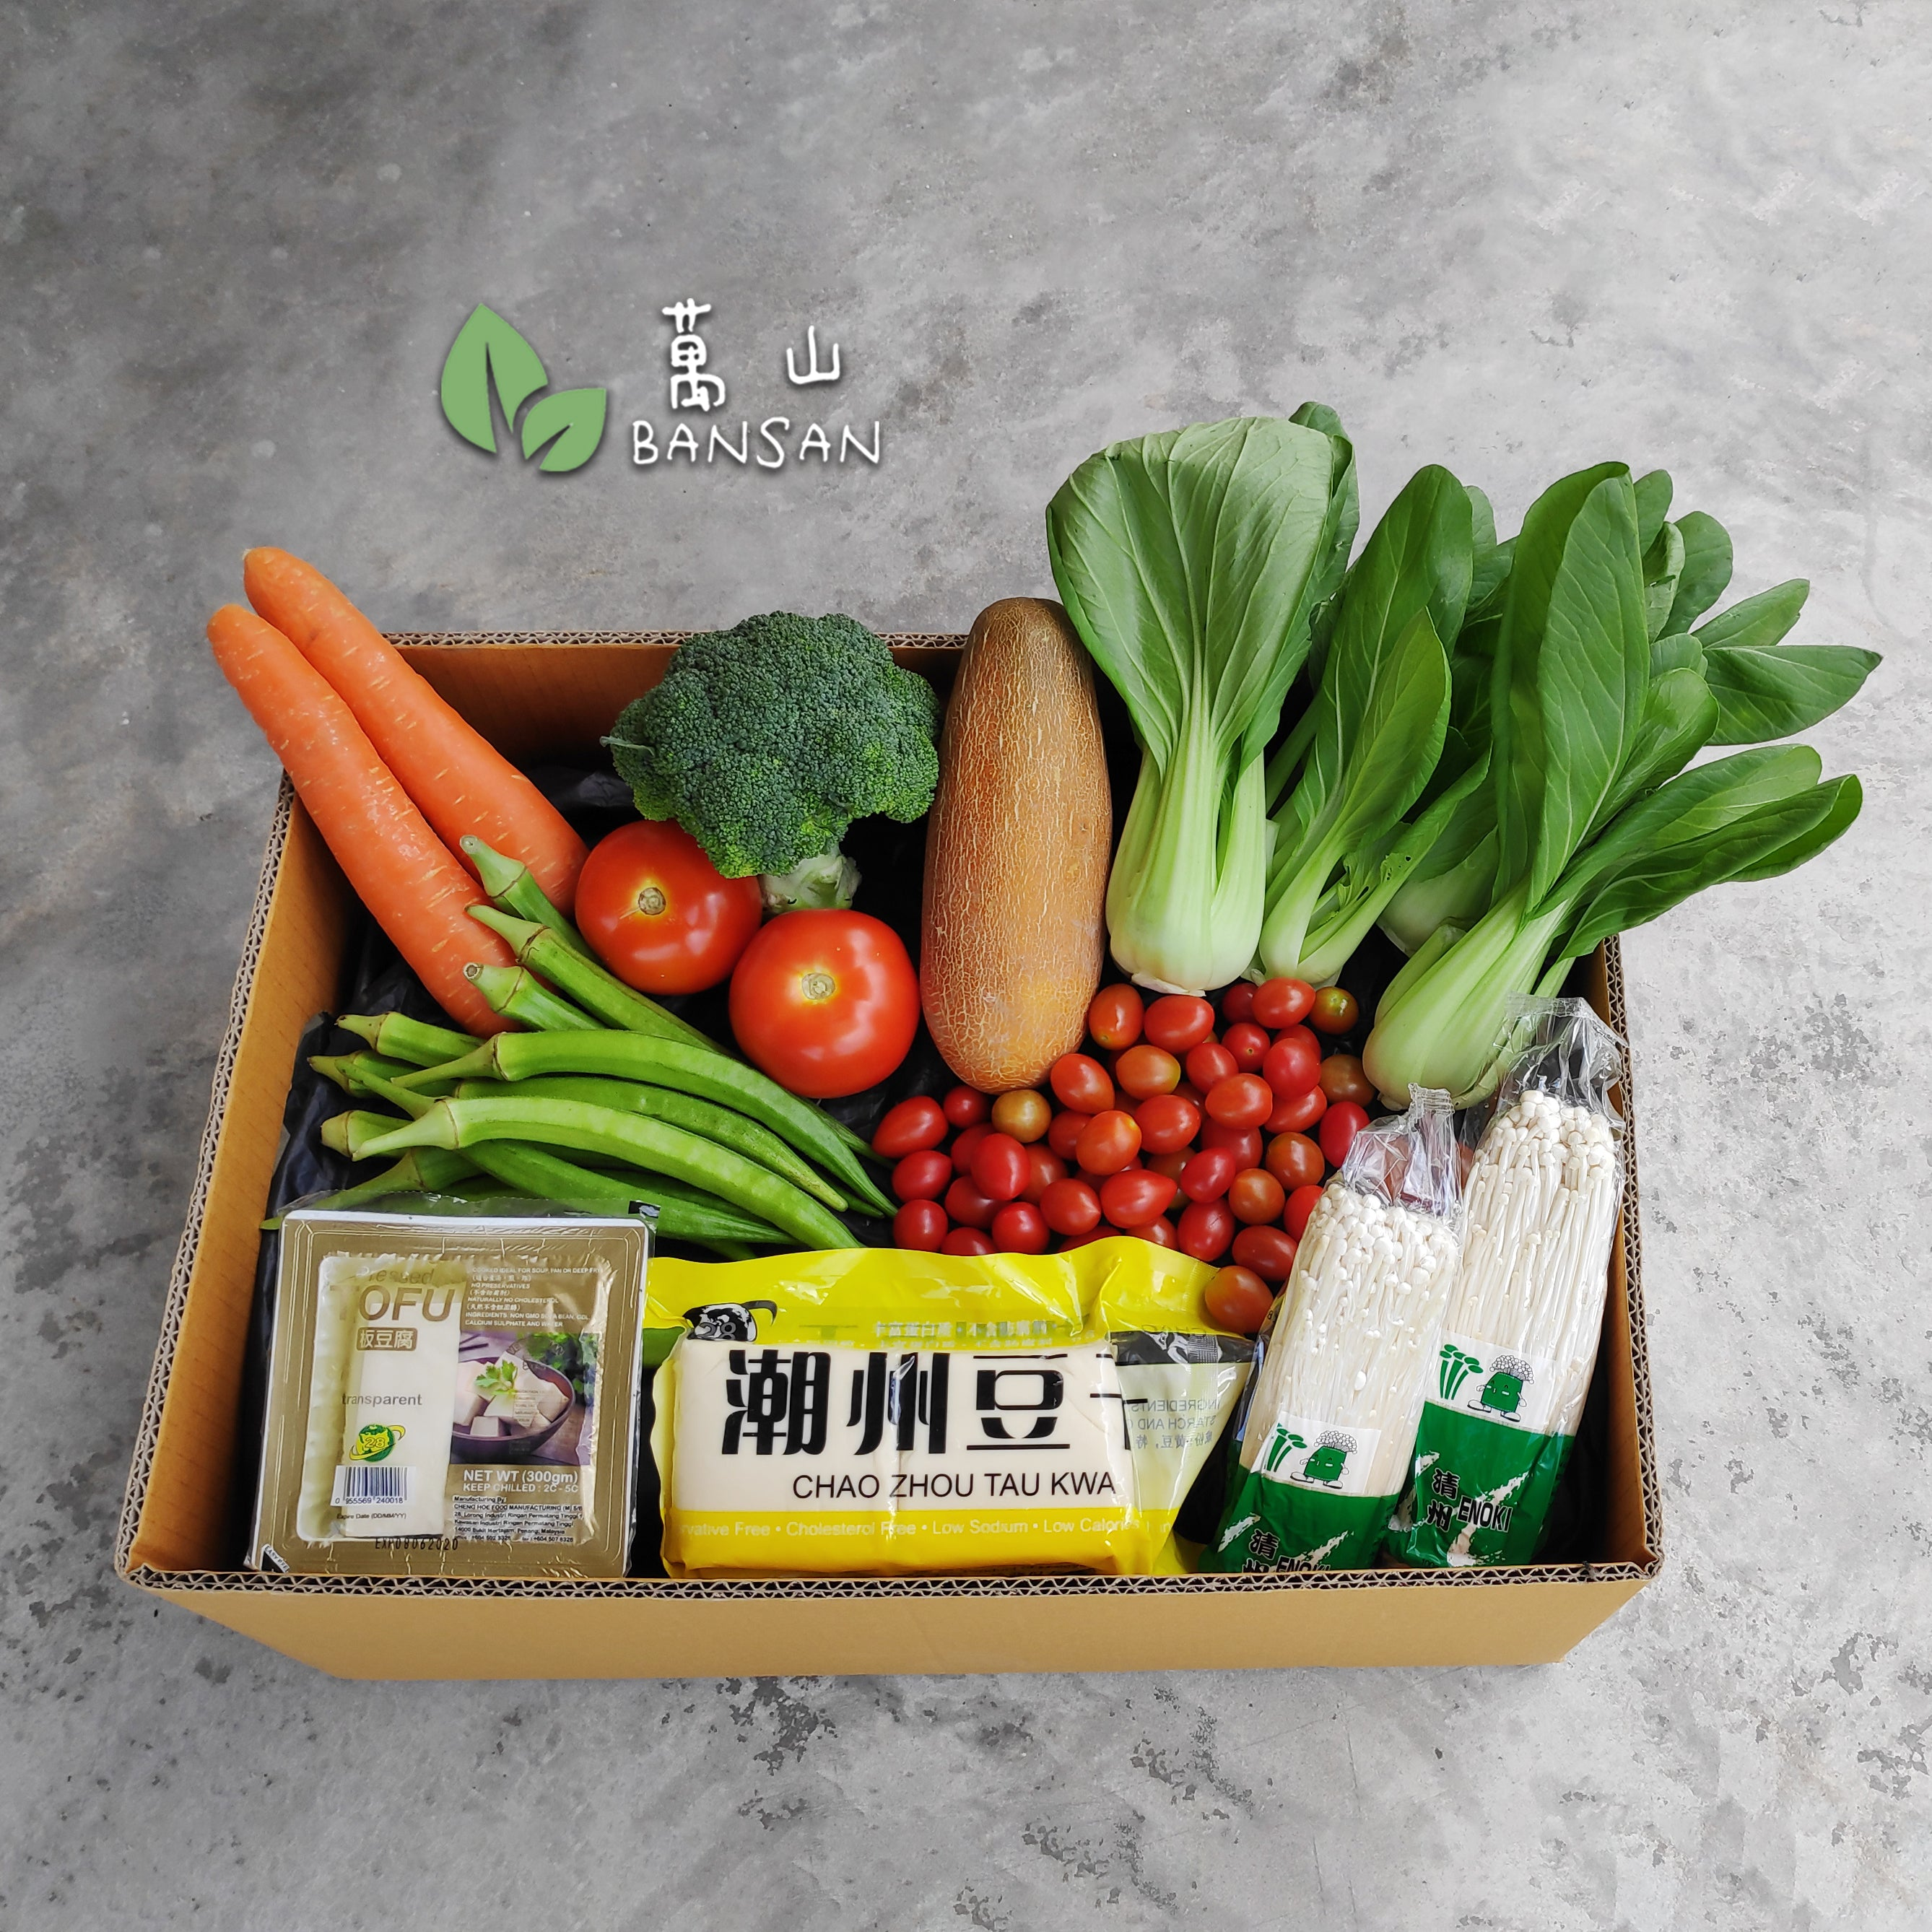 Penang Grocery Store Online Next Day Delivery is Offering S2 Combo Set (Small Family Set)